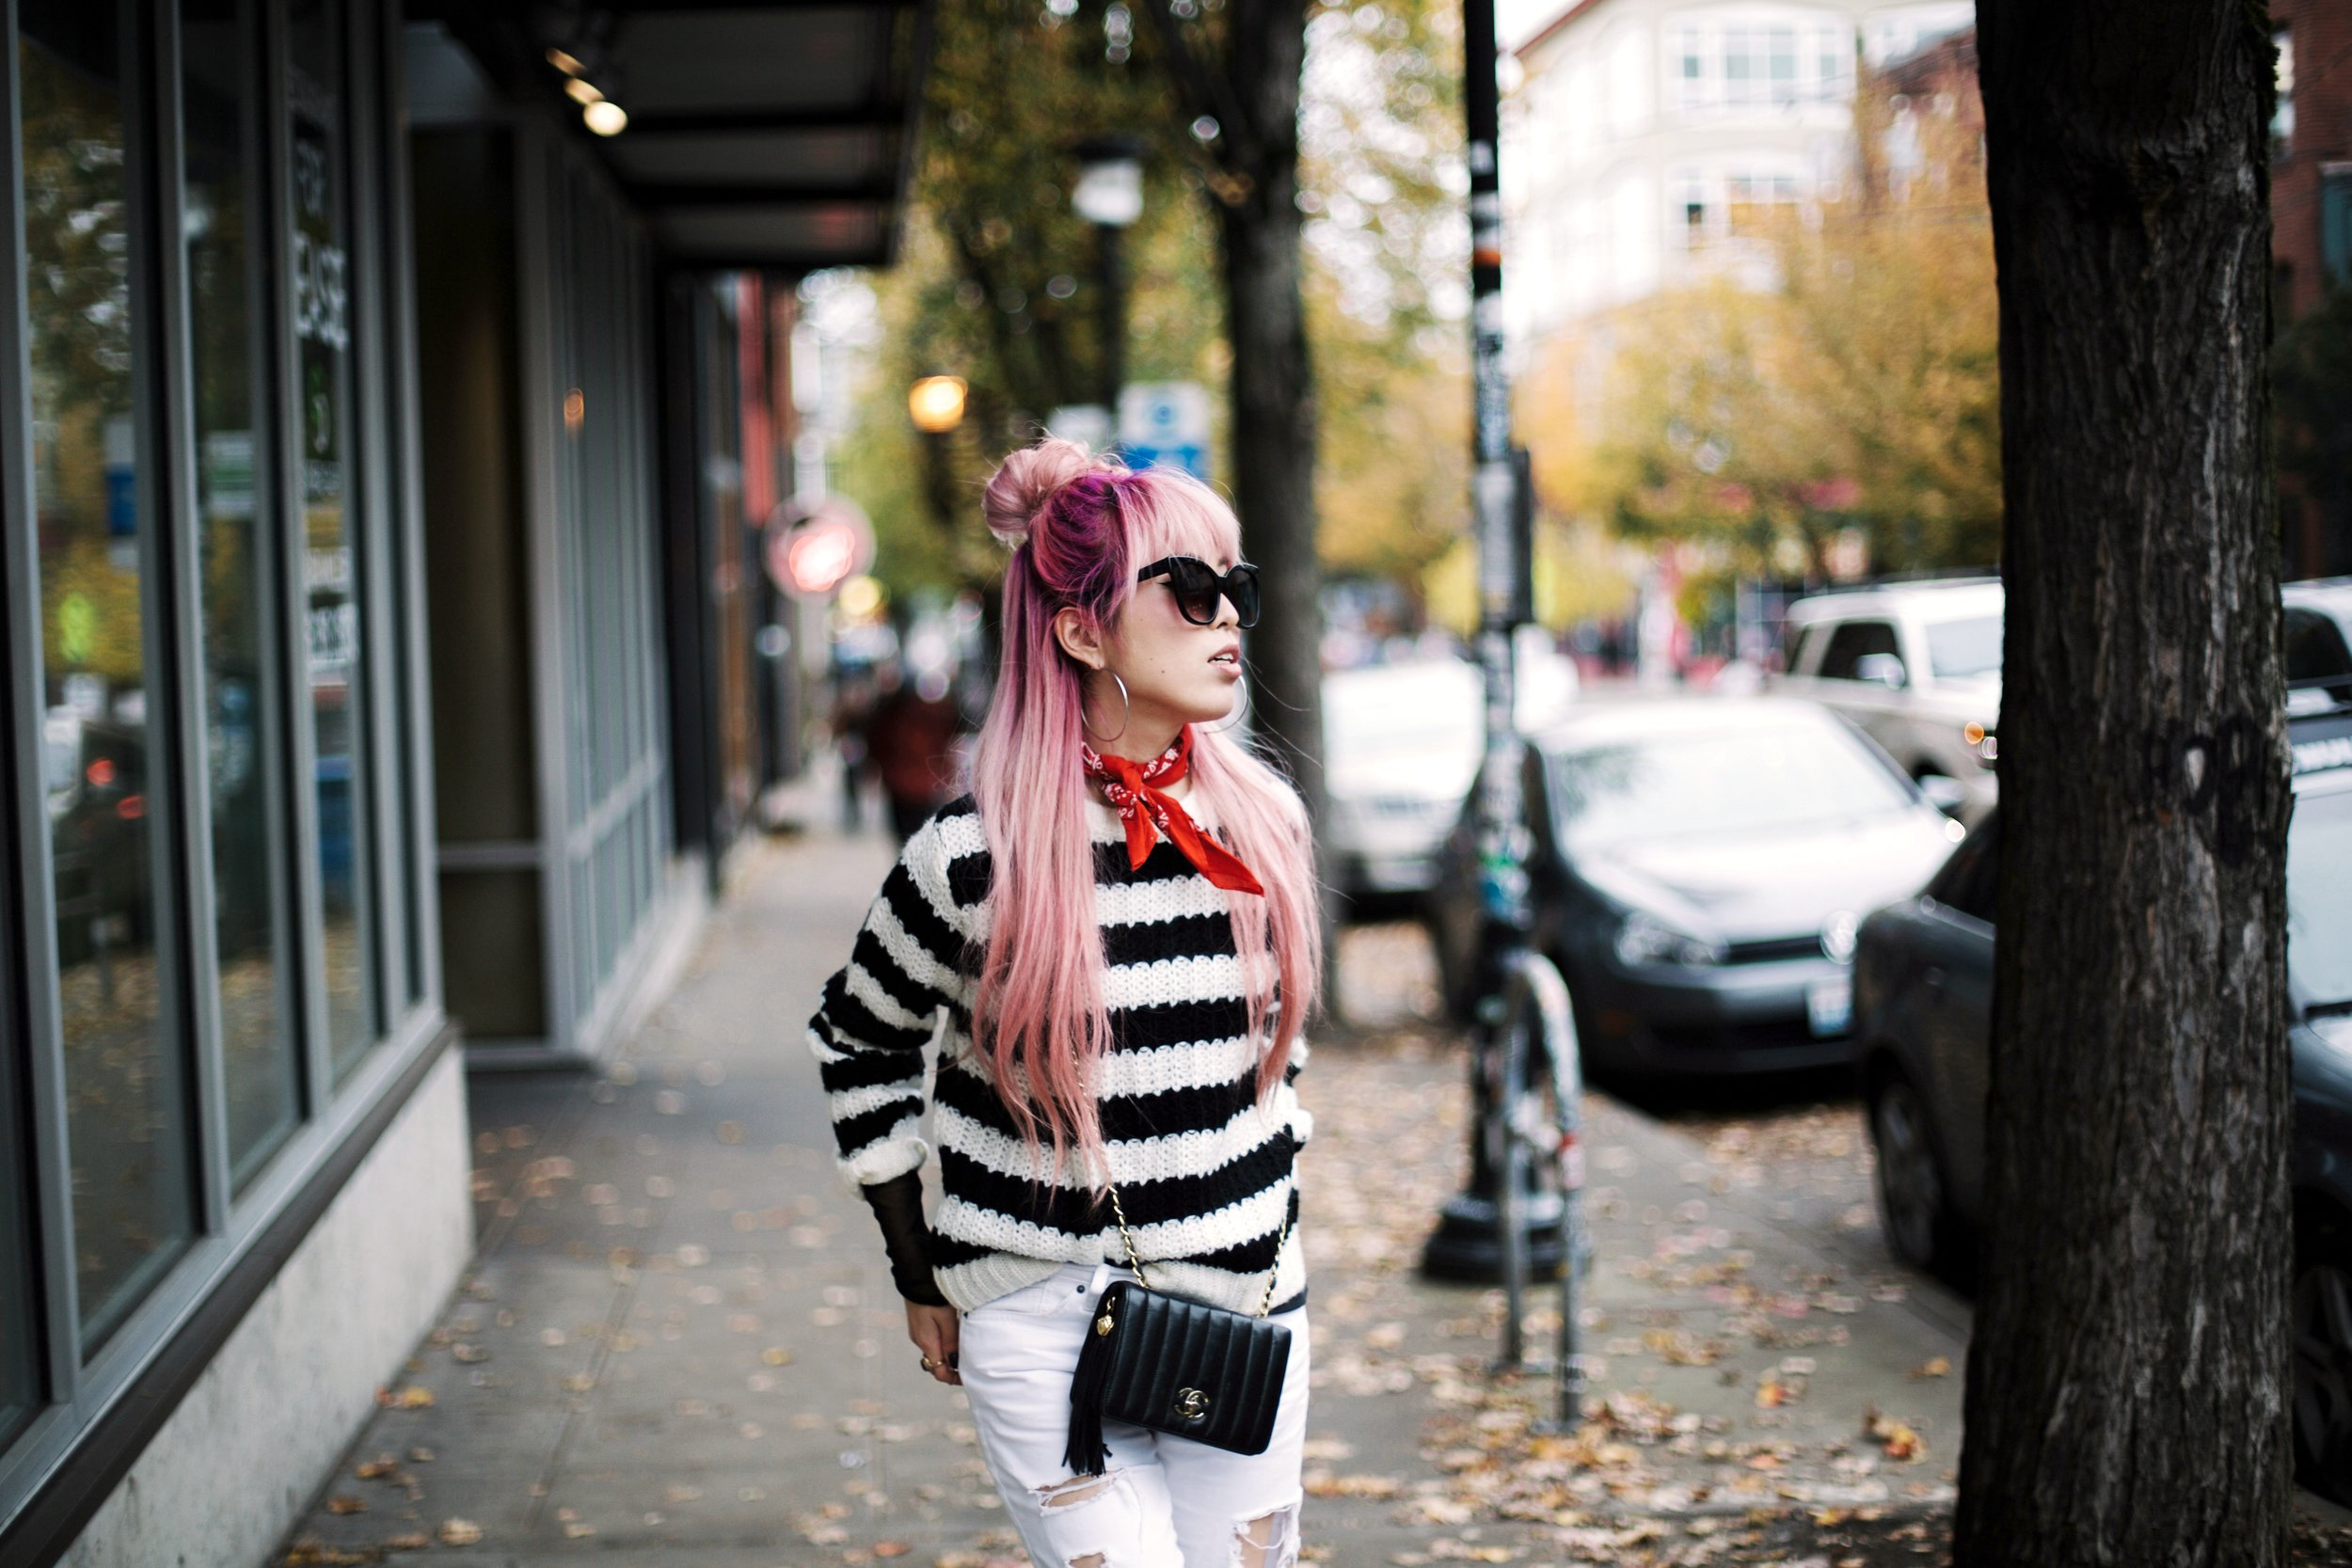 Urban Outfitters Sunglasses & Red bandana-Who What Wear Striped Crew Sweater-Target-Zara Distressed white boyfriend Jeans & Black Sheer Top-Vintage Chanel Crossbody Bag-ASOS Ankle Strap Sandals-Christian Paul Grid White Watch-Aika's Love Closet-Seattle Fashion Blogger-Japanese-Pink Hair-Half Top Knot Hair 17